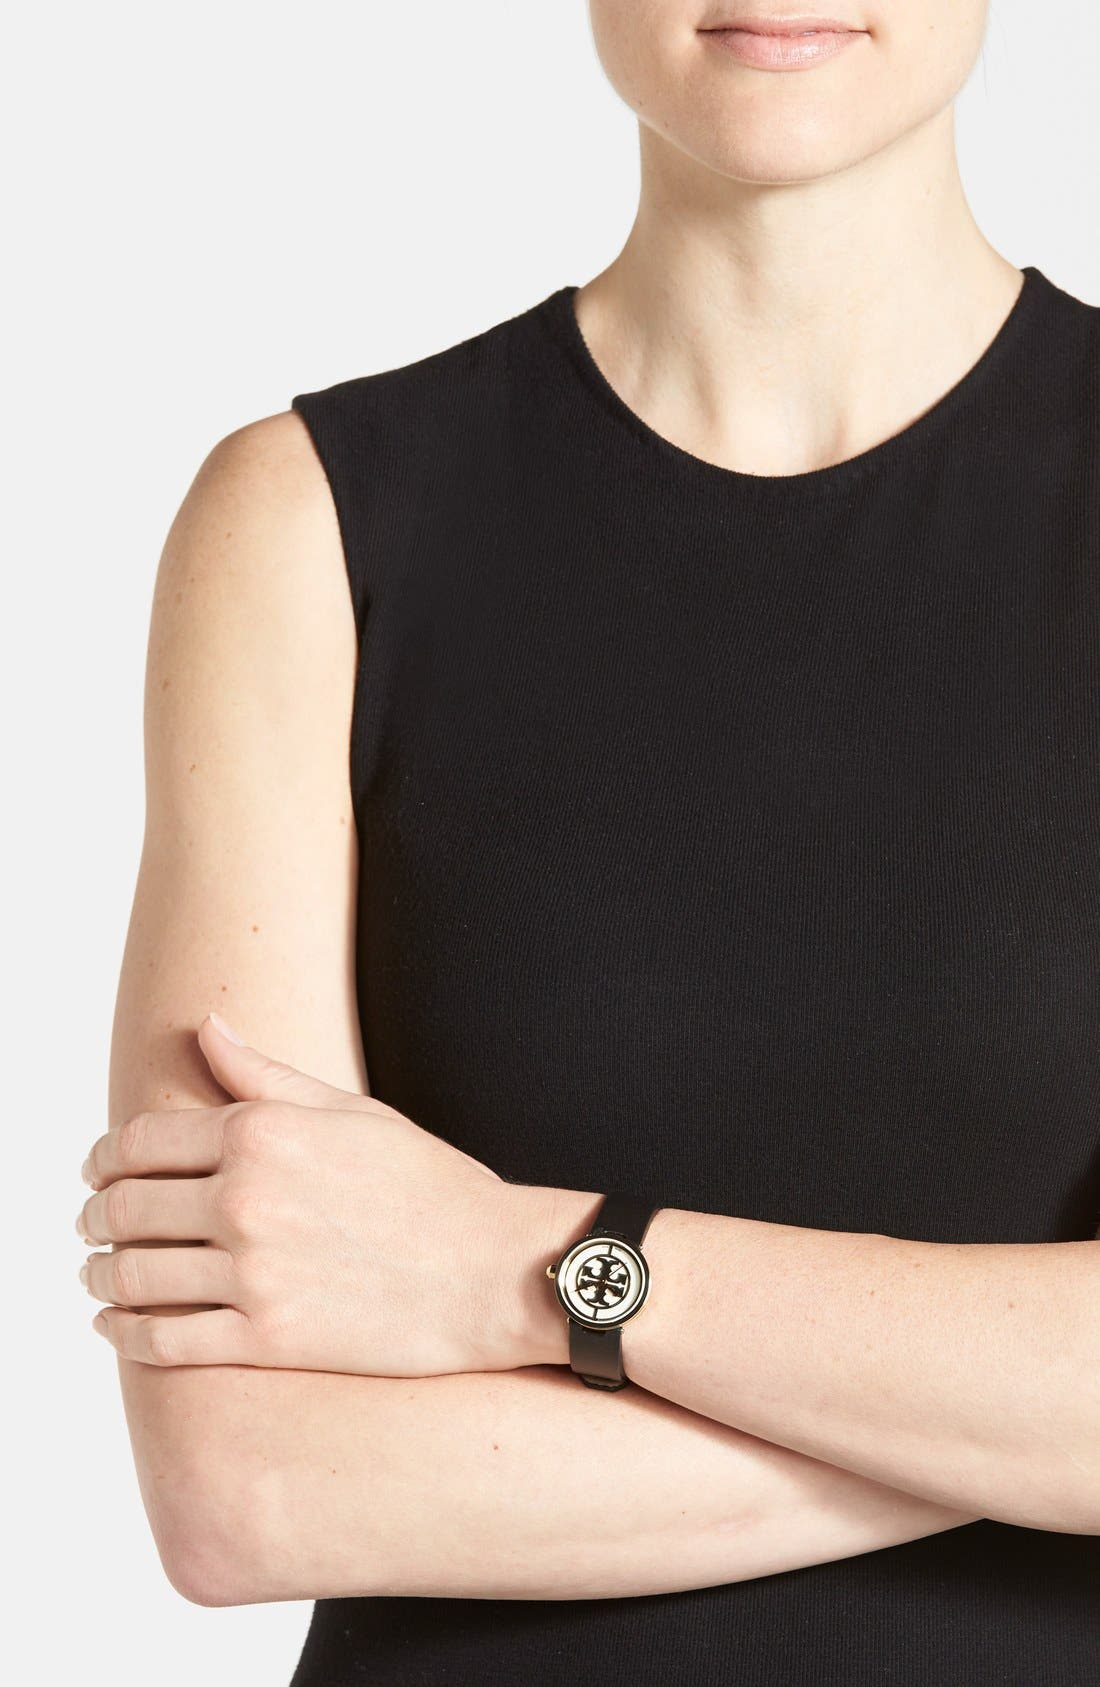 TORY BURCH,                             'Reva' Logo Dial Leather Strap Watch, 28mm,                             Alternate thumbnail 3, color,                             002